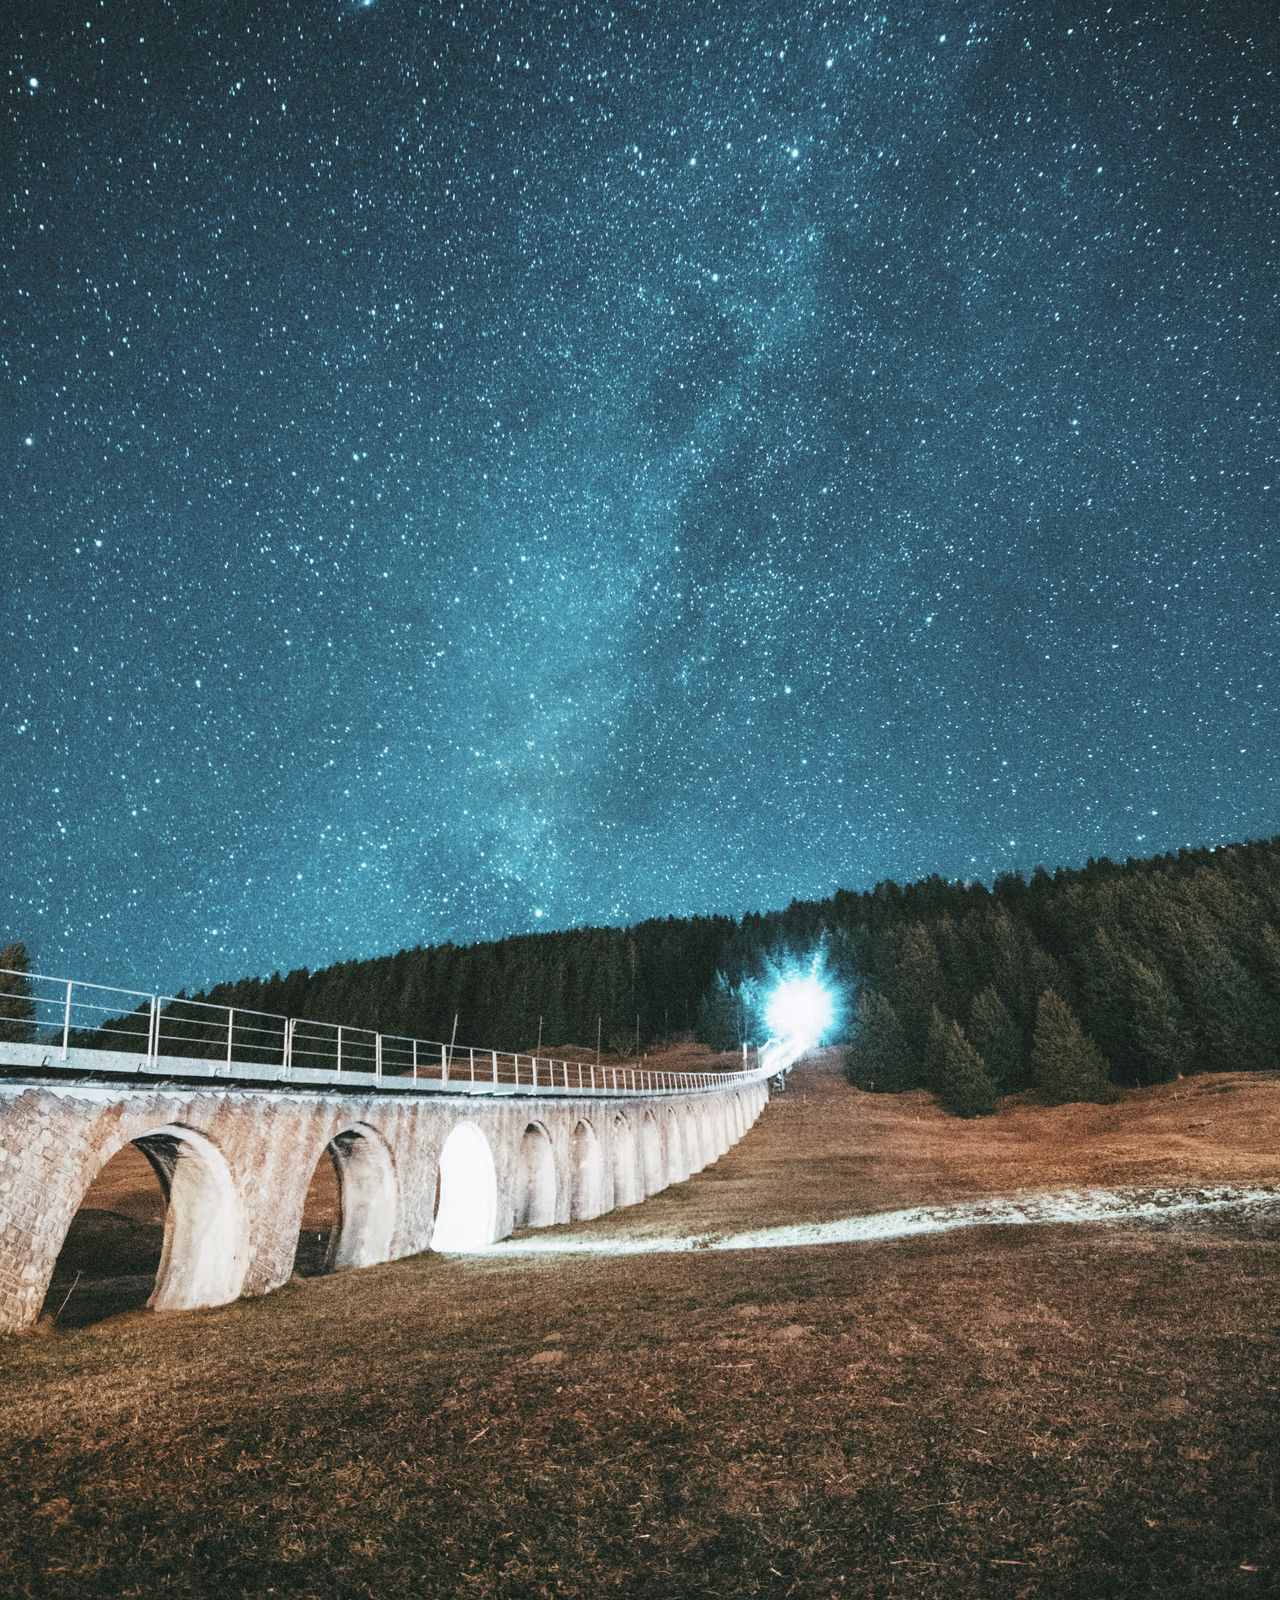 Astronomy Night Star - Space Milky Way Space Long Exposure Space And Astronomy Sky Galaxy Beauty In Nature Astrology Sign No People Outdoors Nightphotography Lights Blue Nature Bridge Switzerland Lauterbrunnen Starry Sky